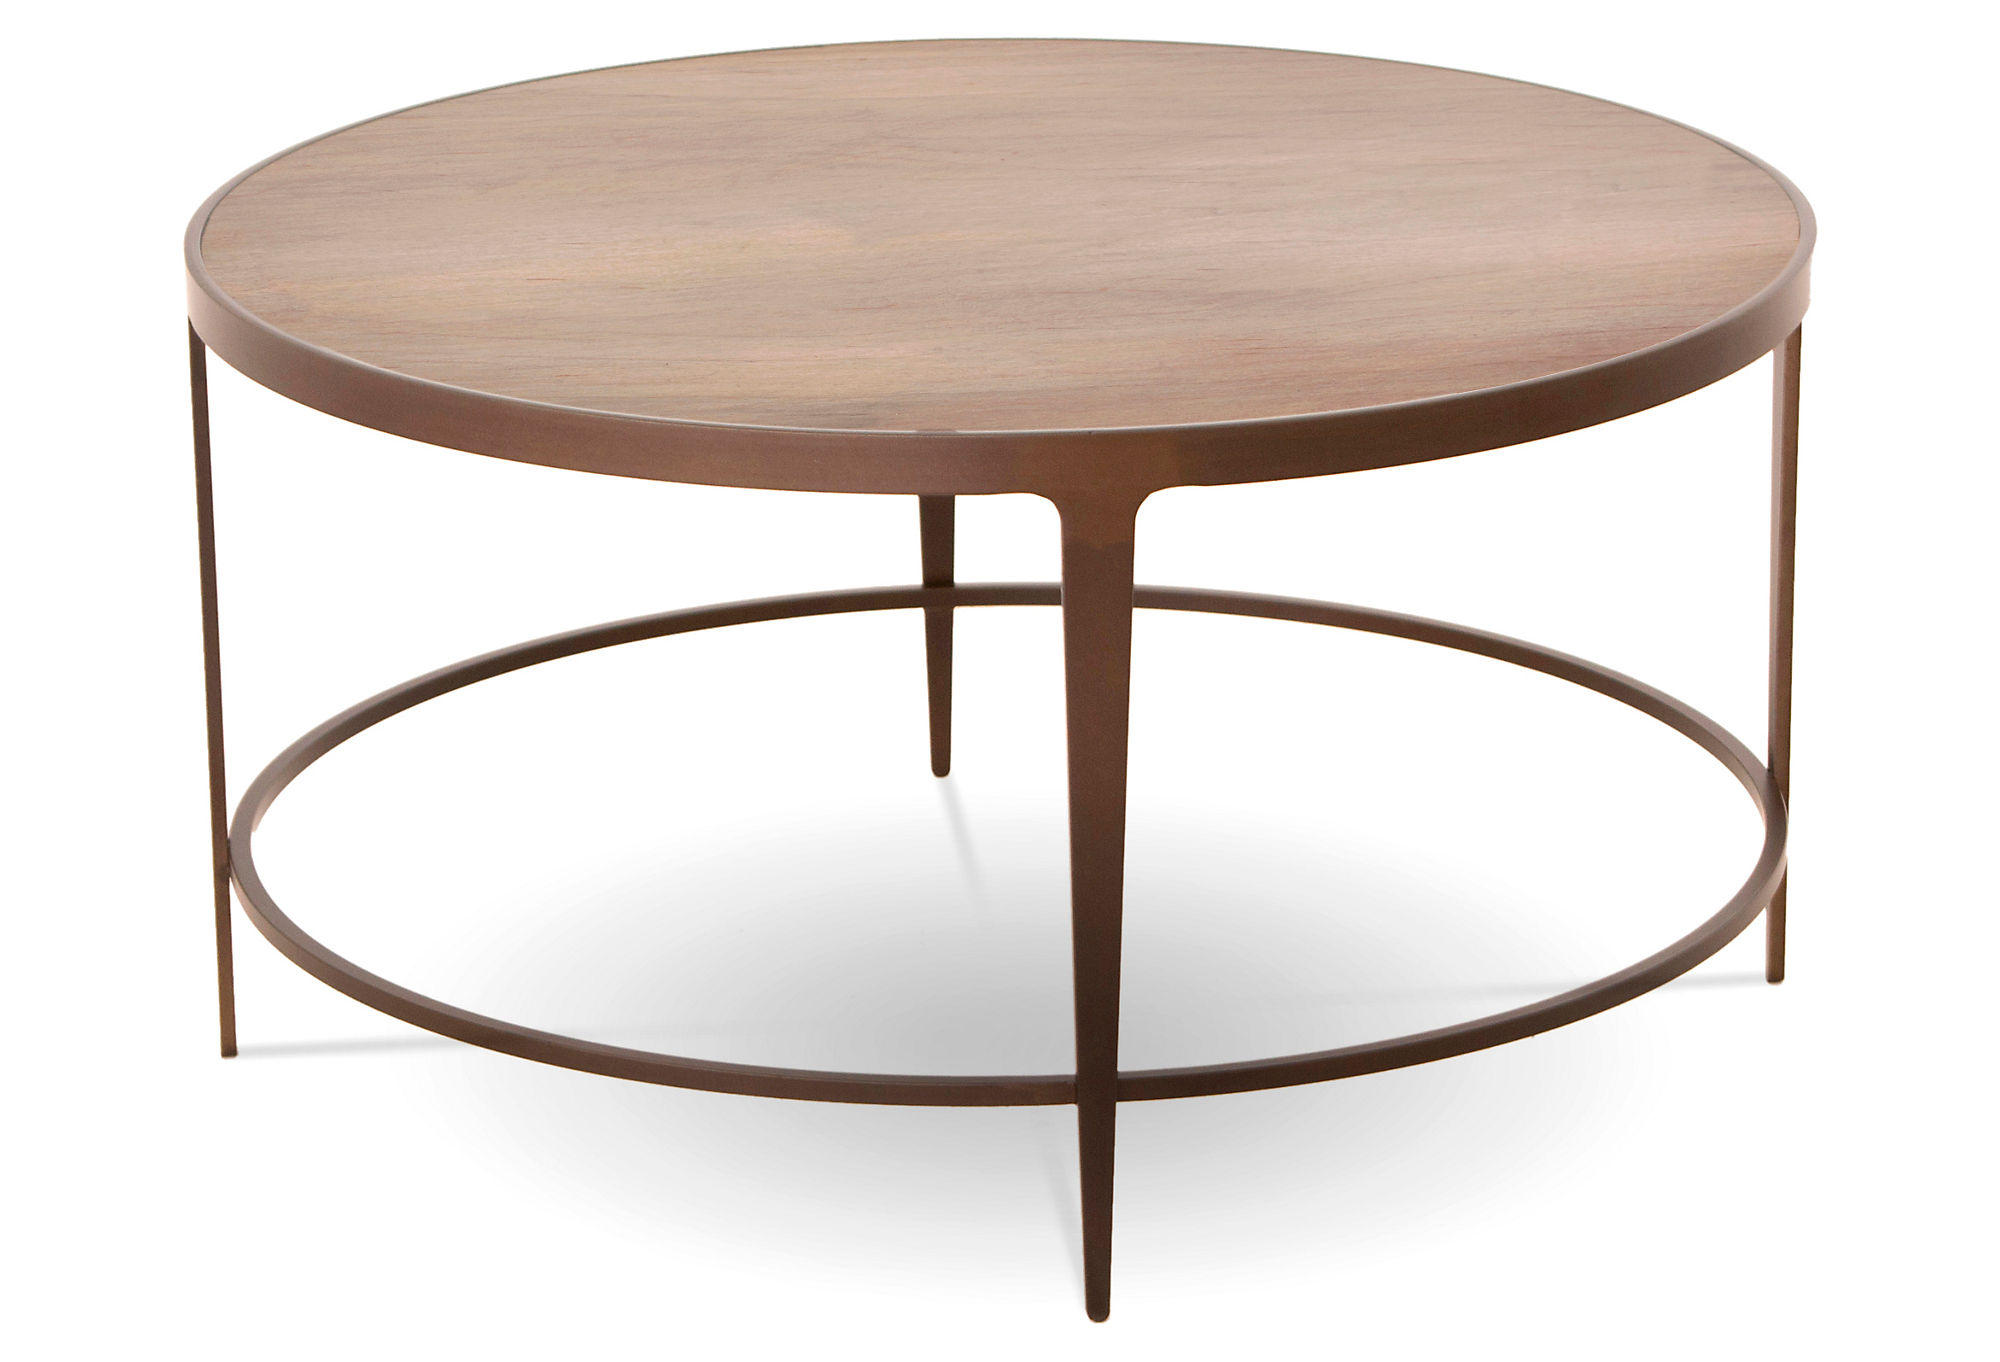 Sawyer 35 Round Cocktail Table Oyster From One Kings Lane